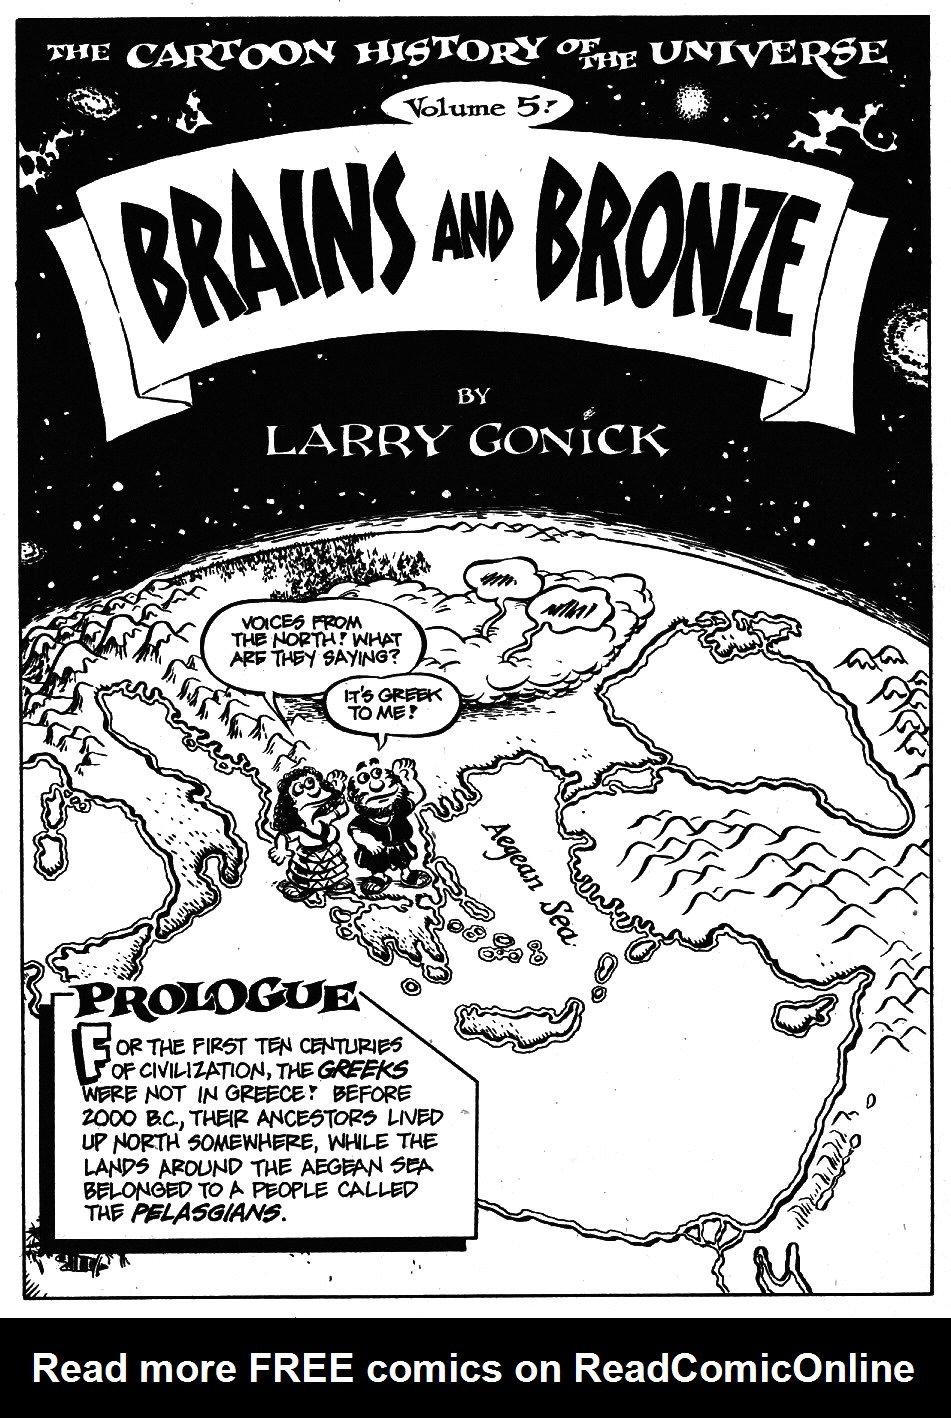 Read online The Cartoon History of the Universe comic -  Issue #5 - 3